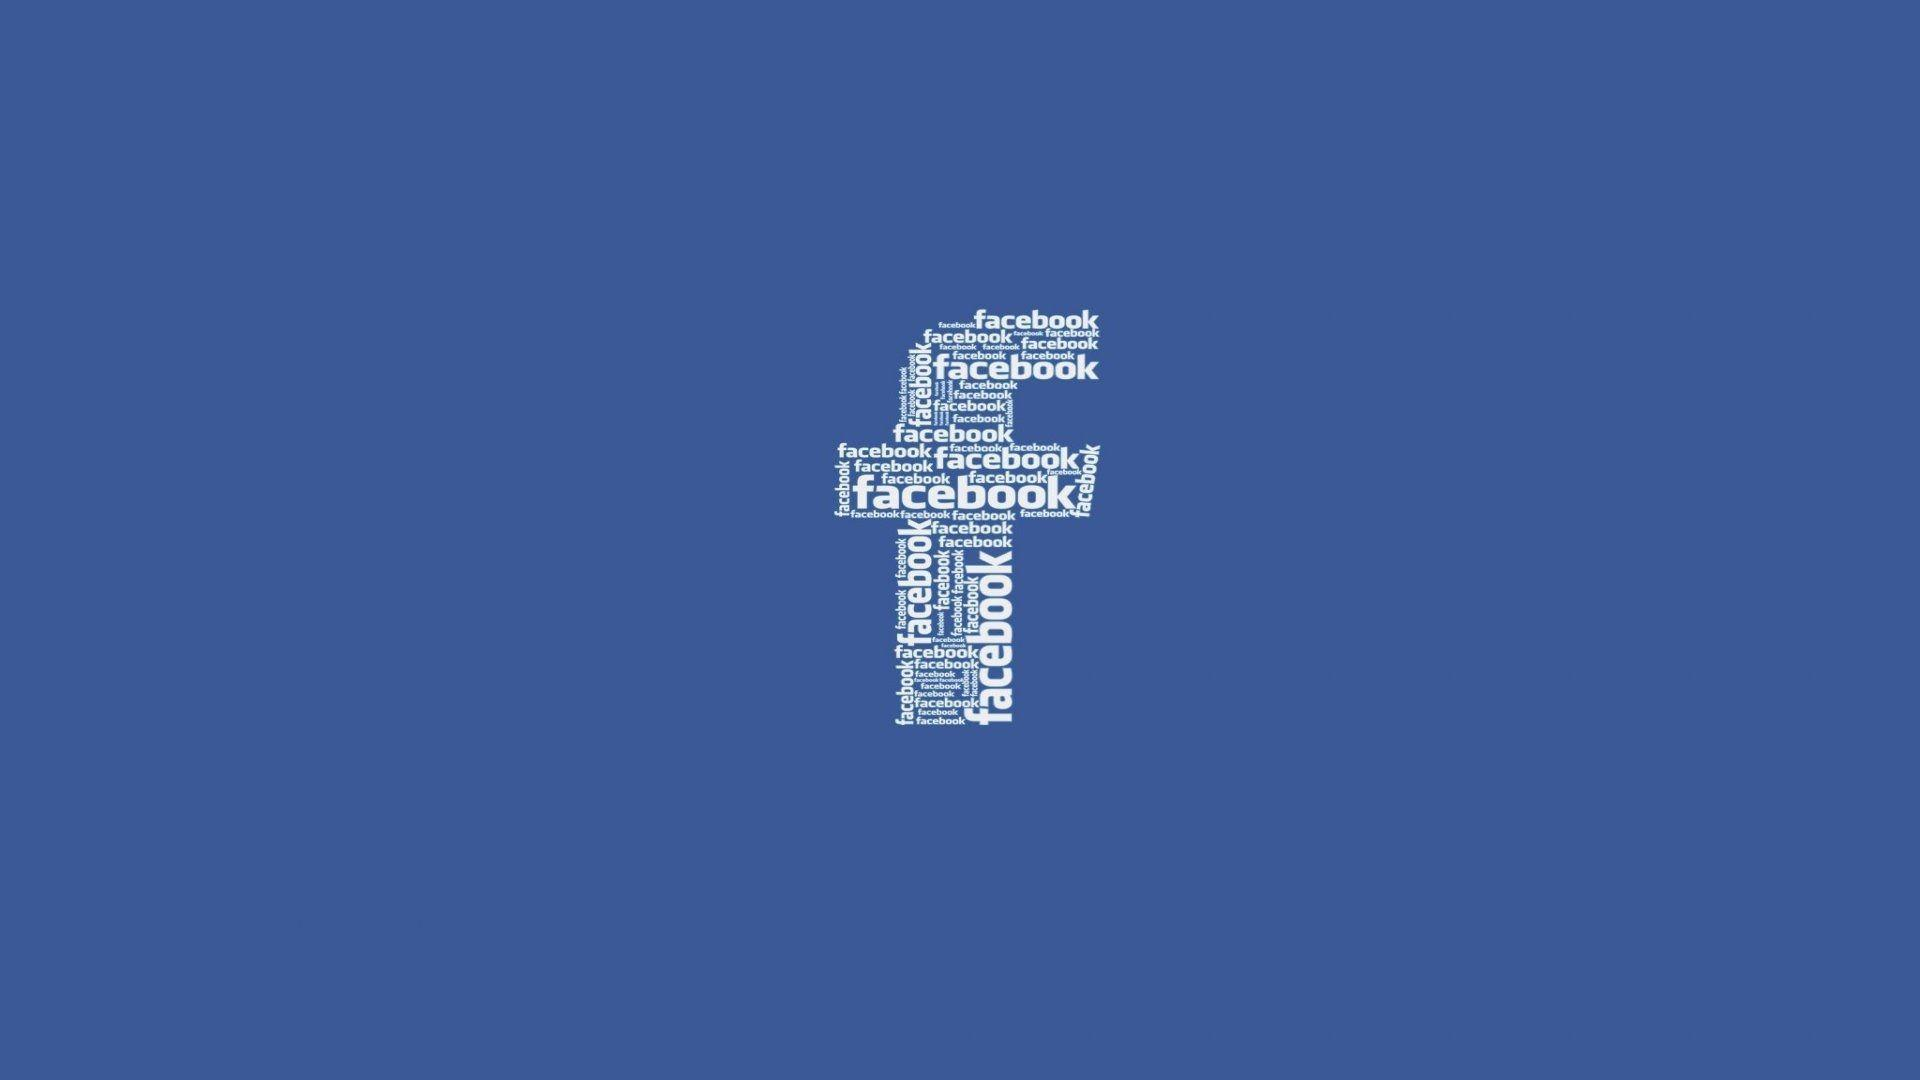 Facebook Backgrounds HD